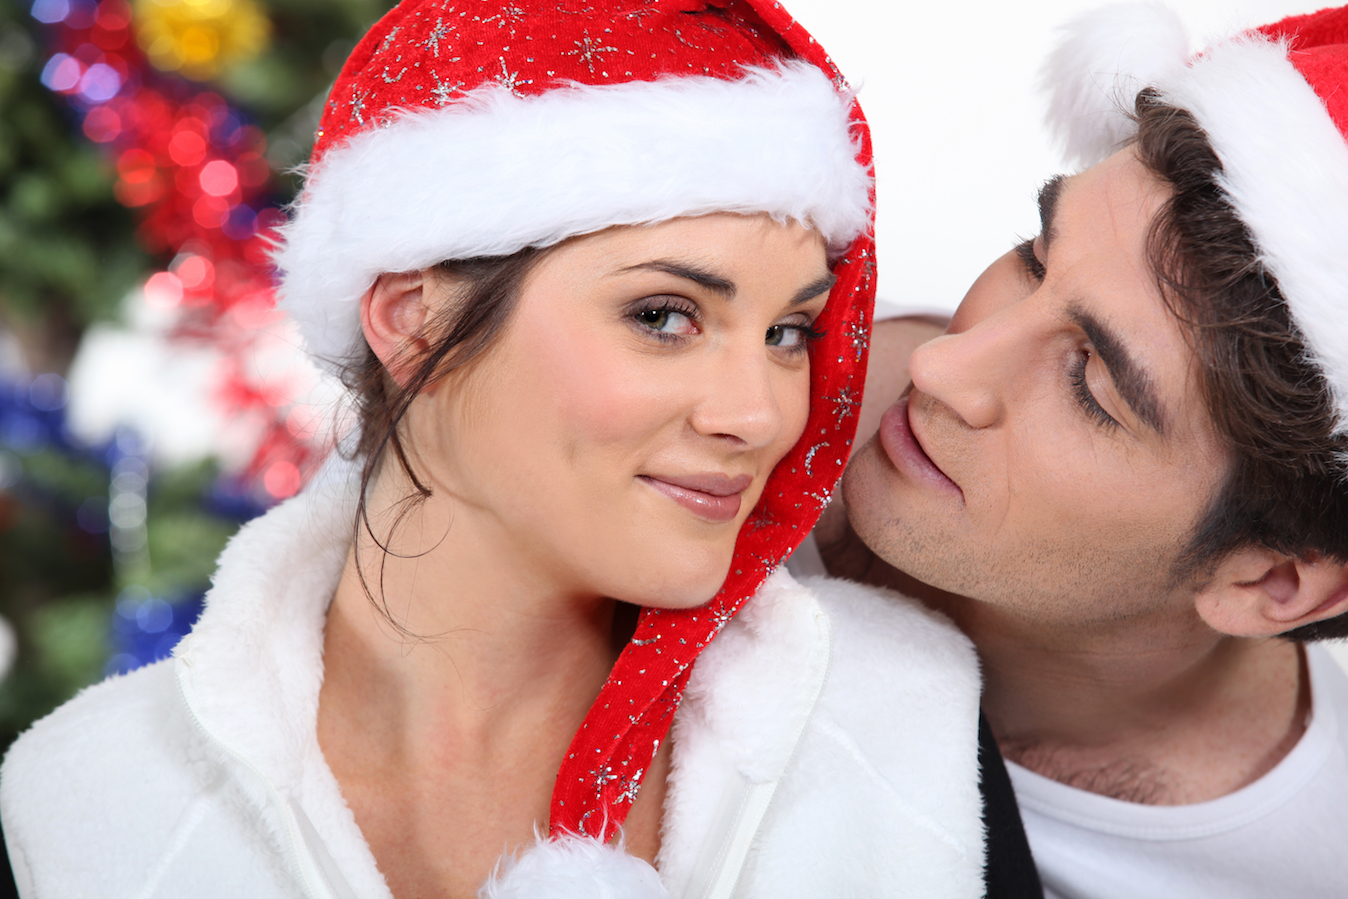 Scientists are reporting that the mood and behavior of society shifts around the holidays, and people become more interested in sex.